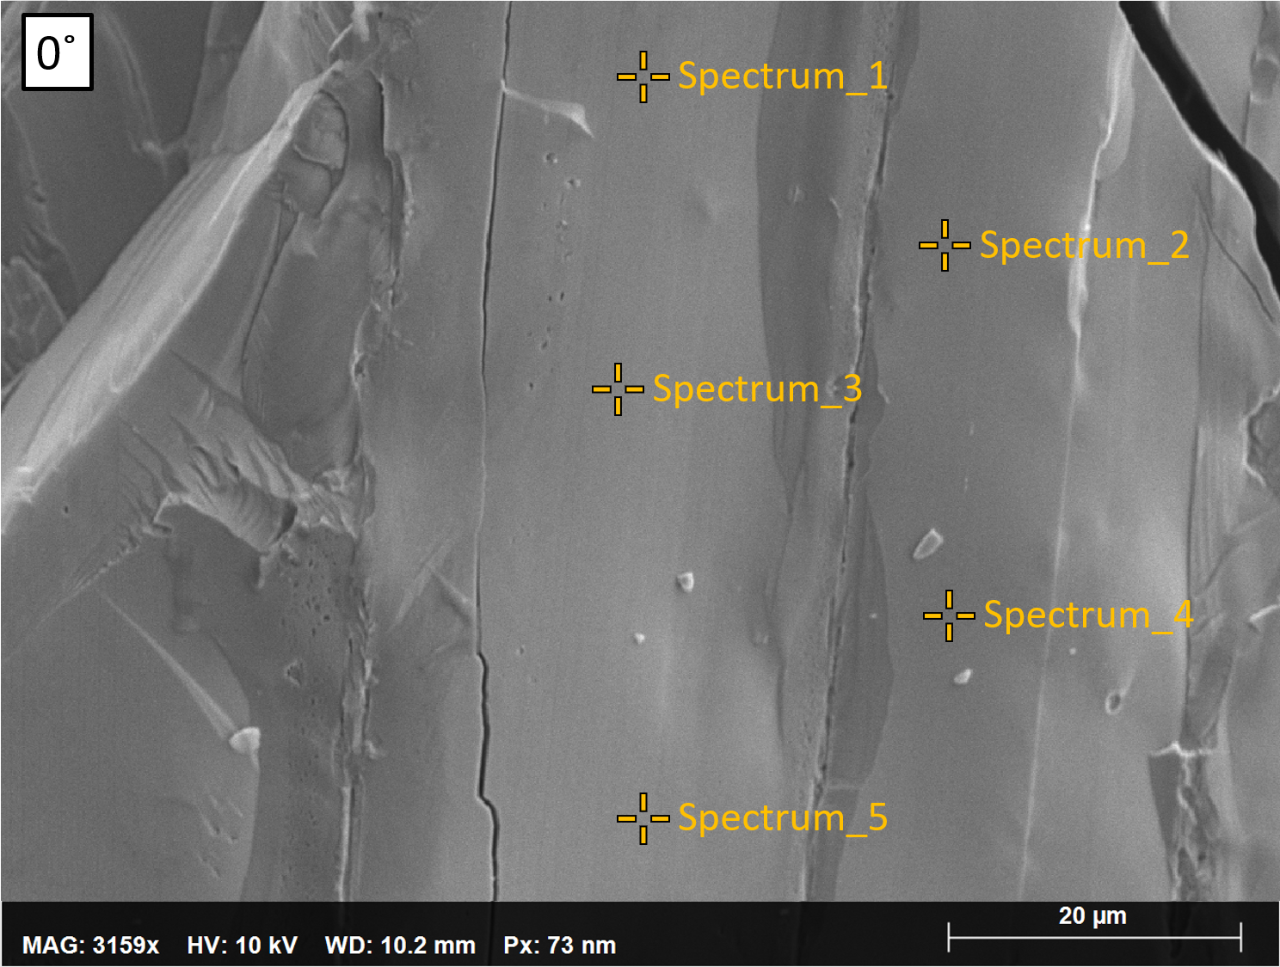 SE-image of a ternary alloy with rough sample topography and certified concentration values